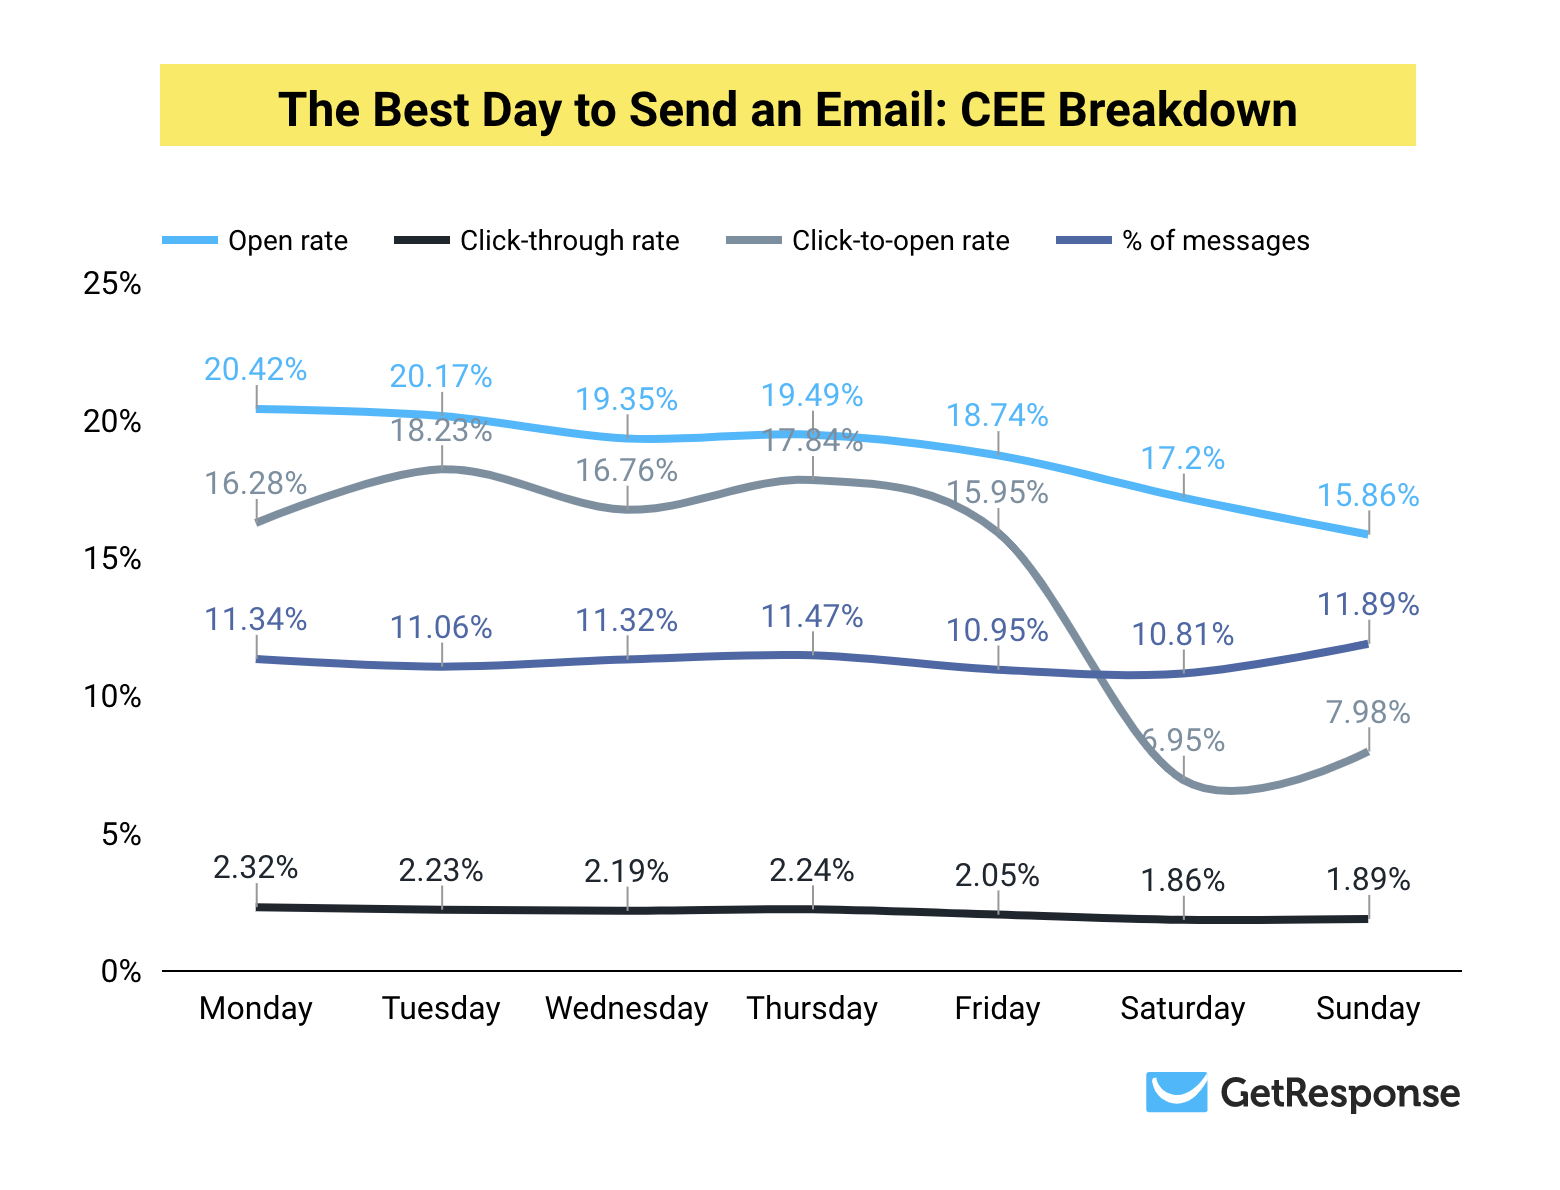 Chart showing the different email campaign results for individual days of the week in the CEE region.